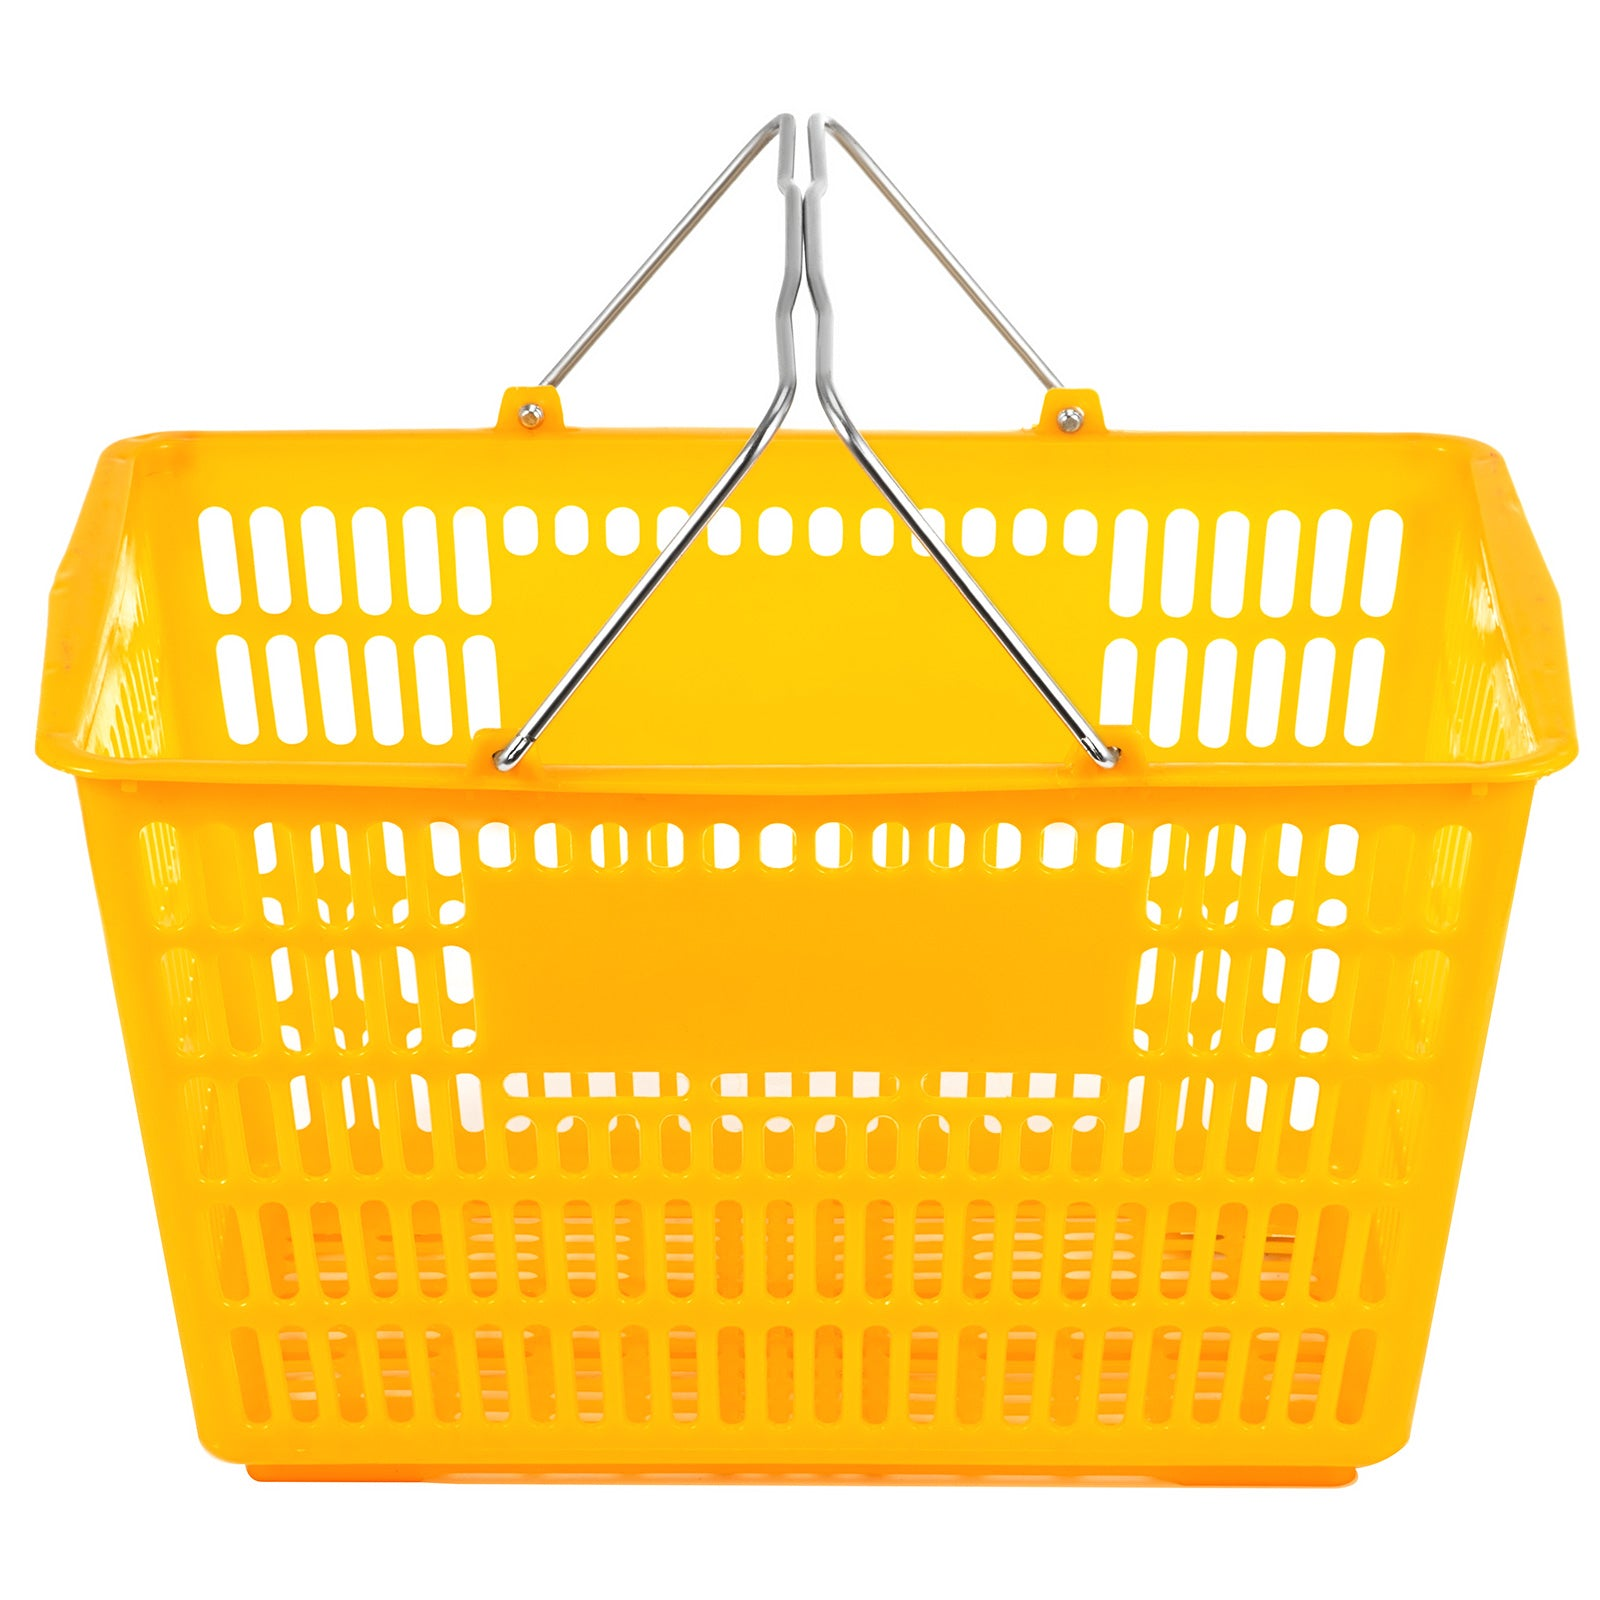 12pcs Plastic Shopping Basket 18.5x12.5x10.4in Lightweight Ktv Metal Handles